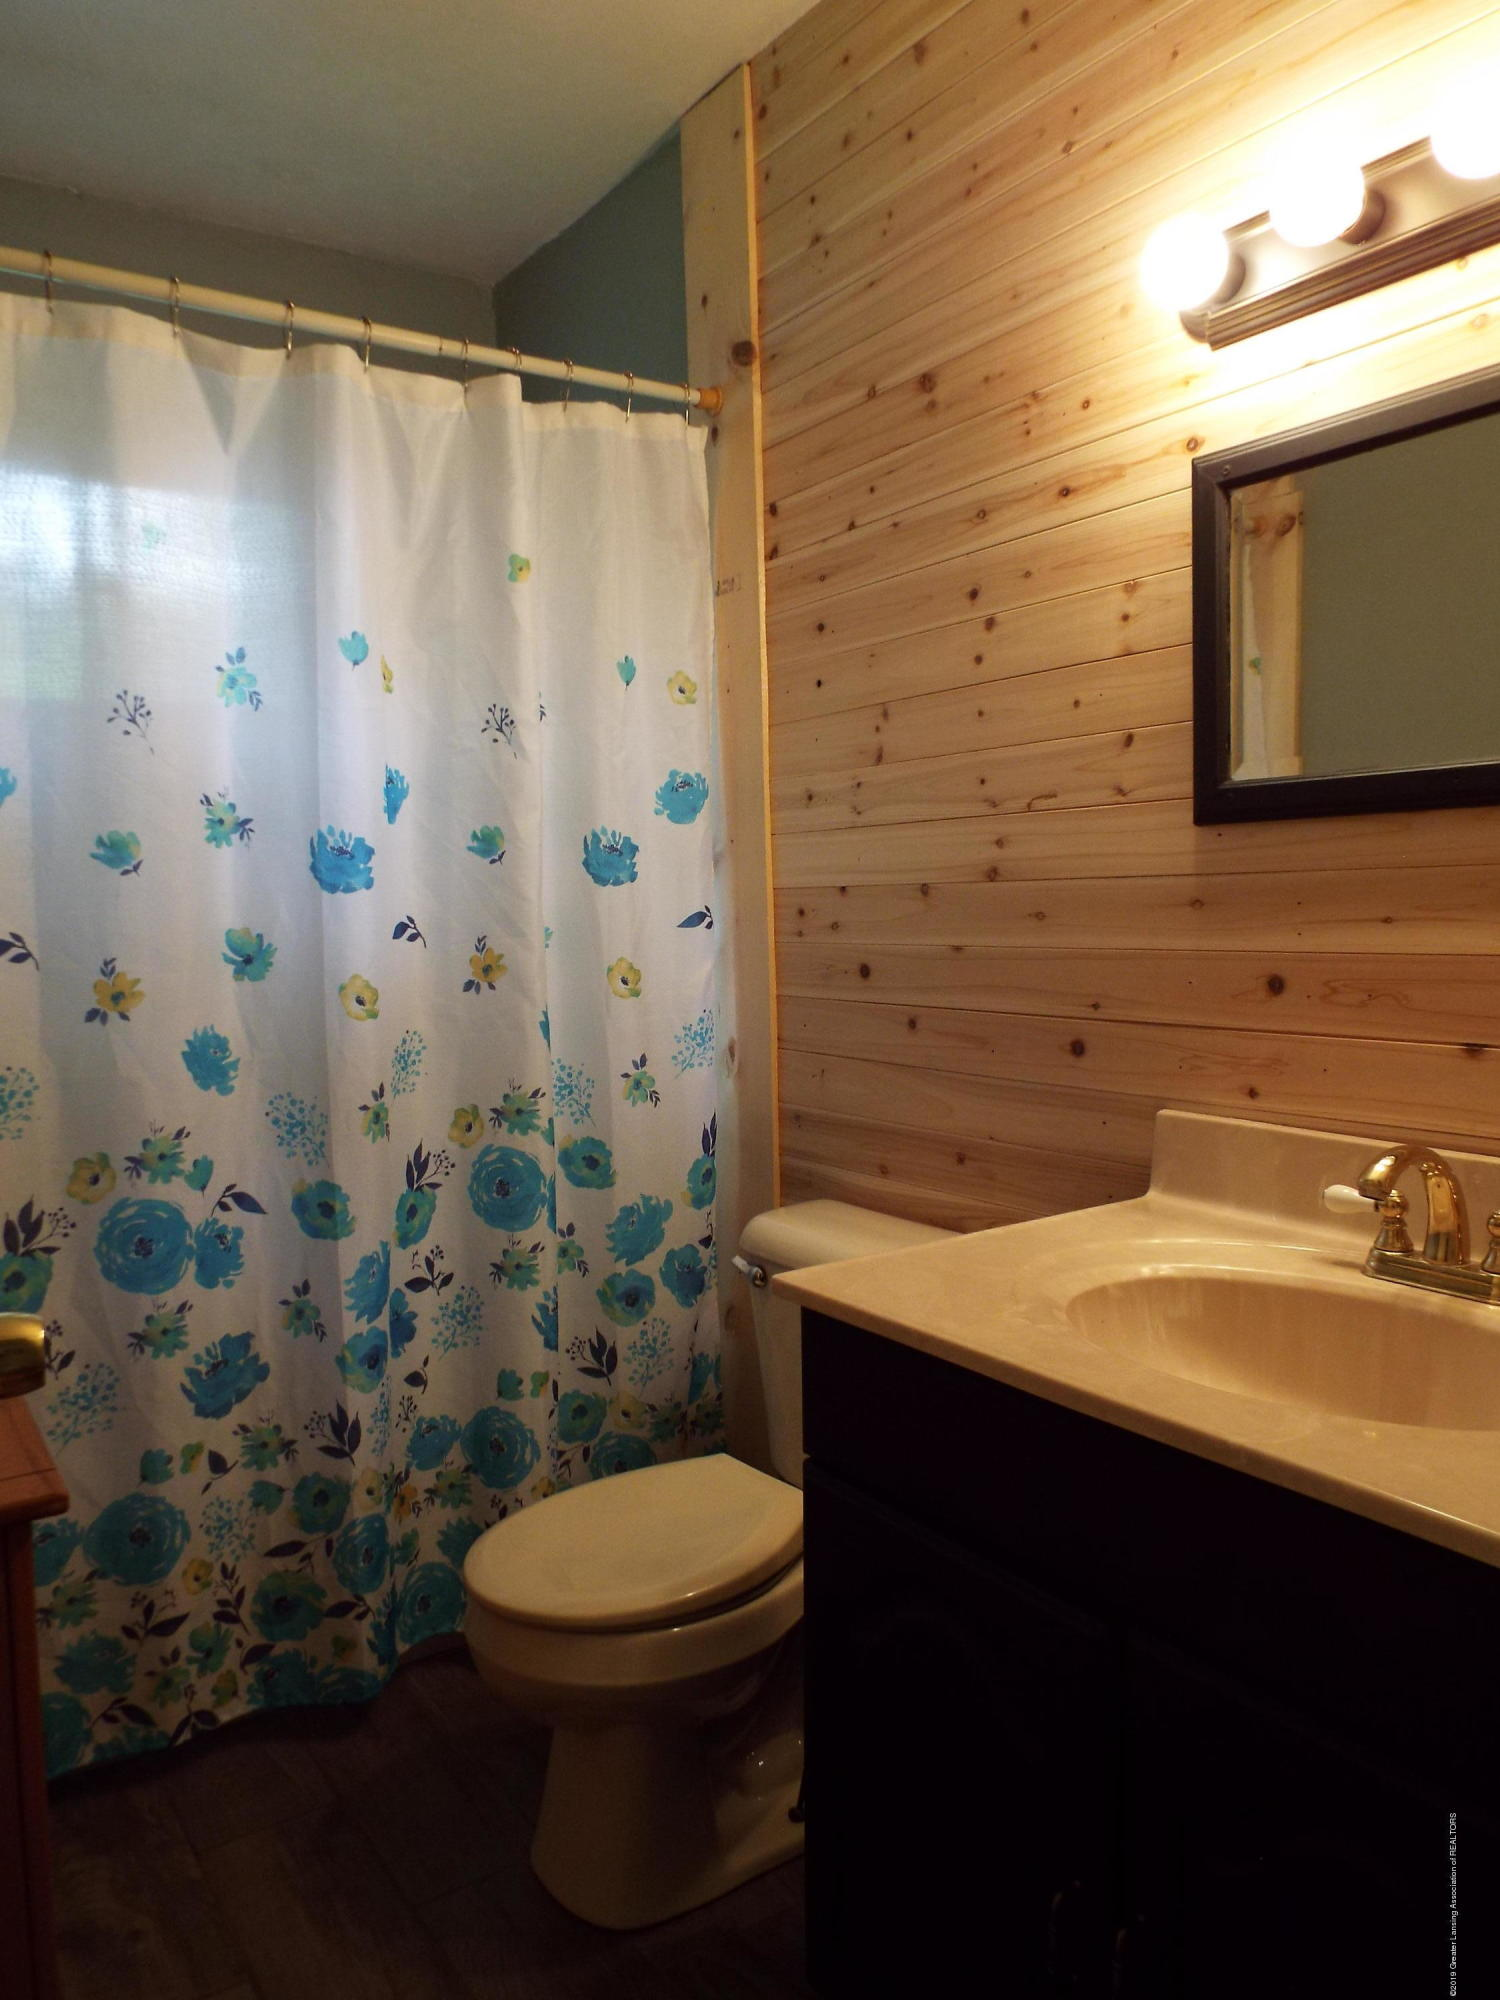 3700 Wedgewood Dr - Bathroom - 10